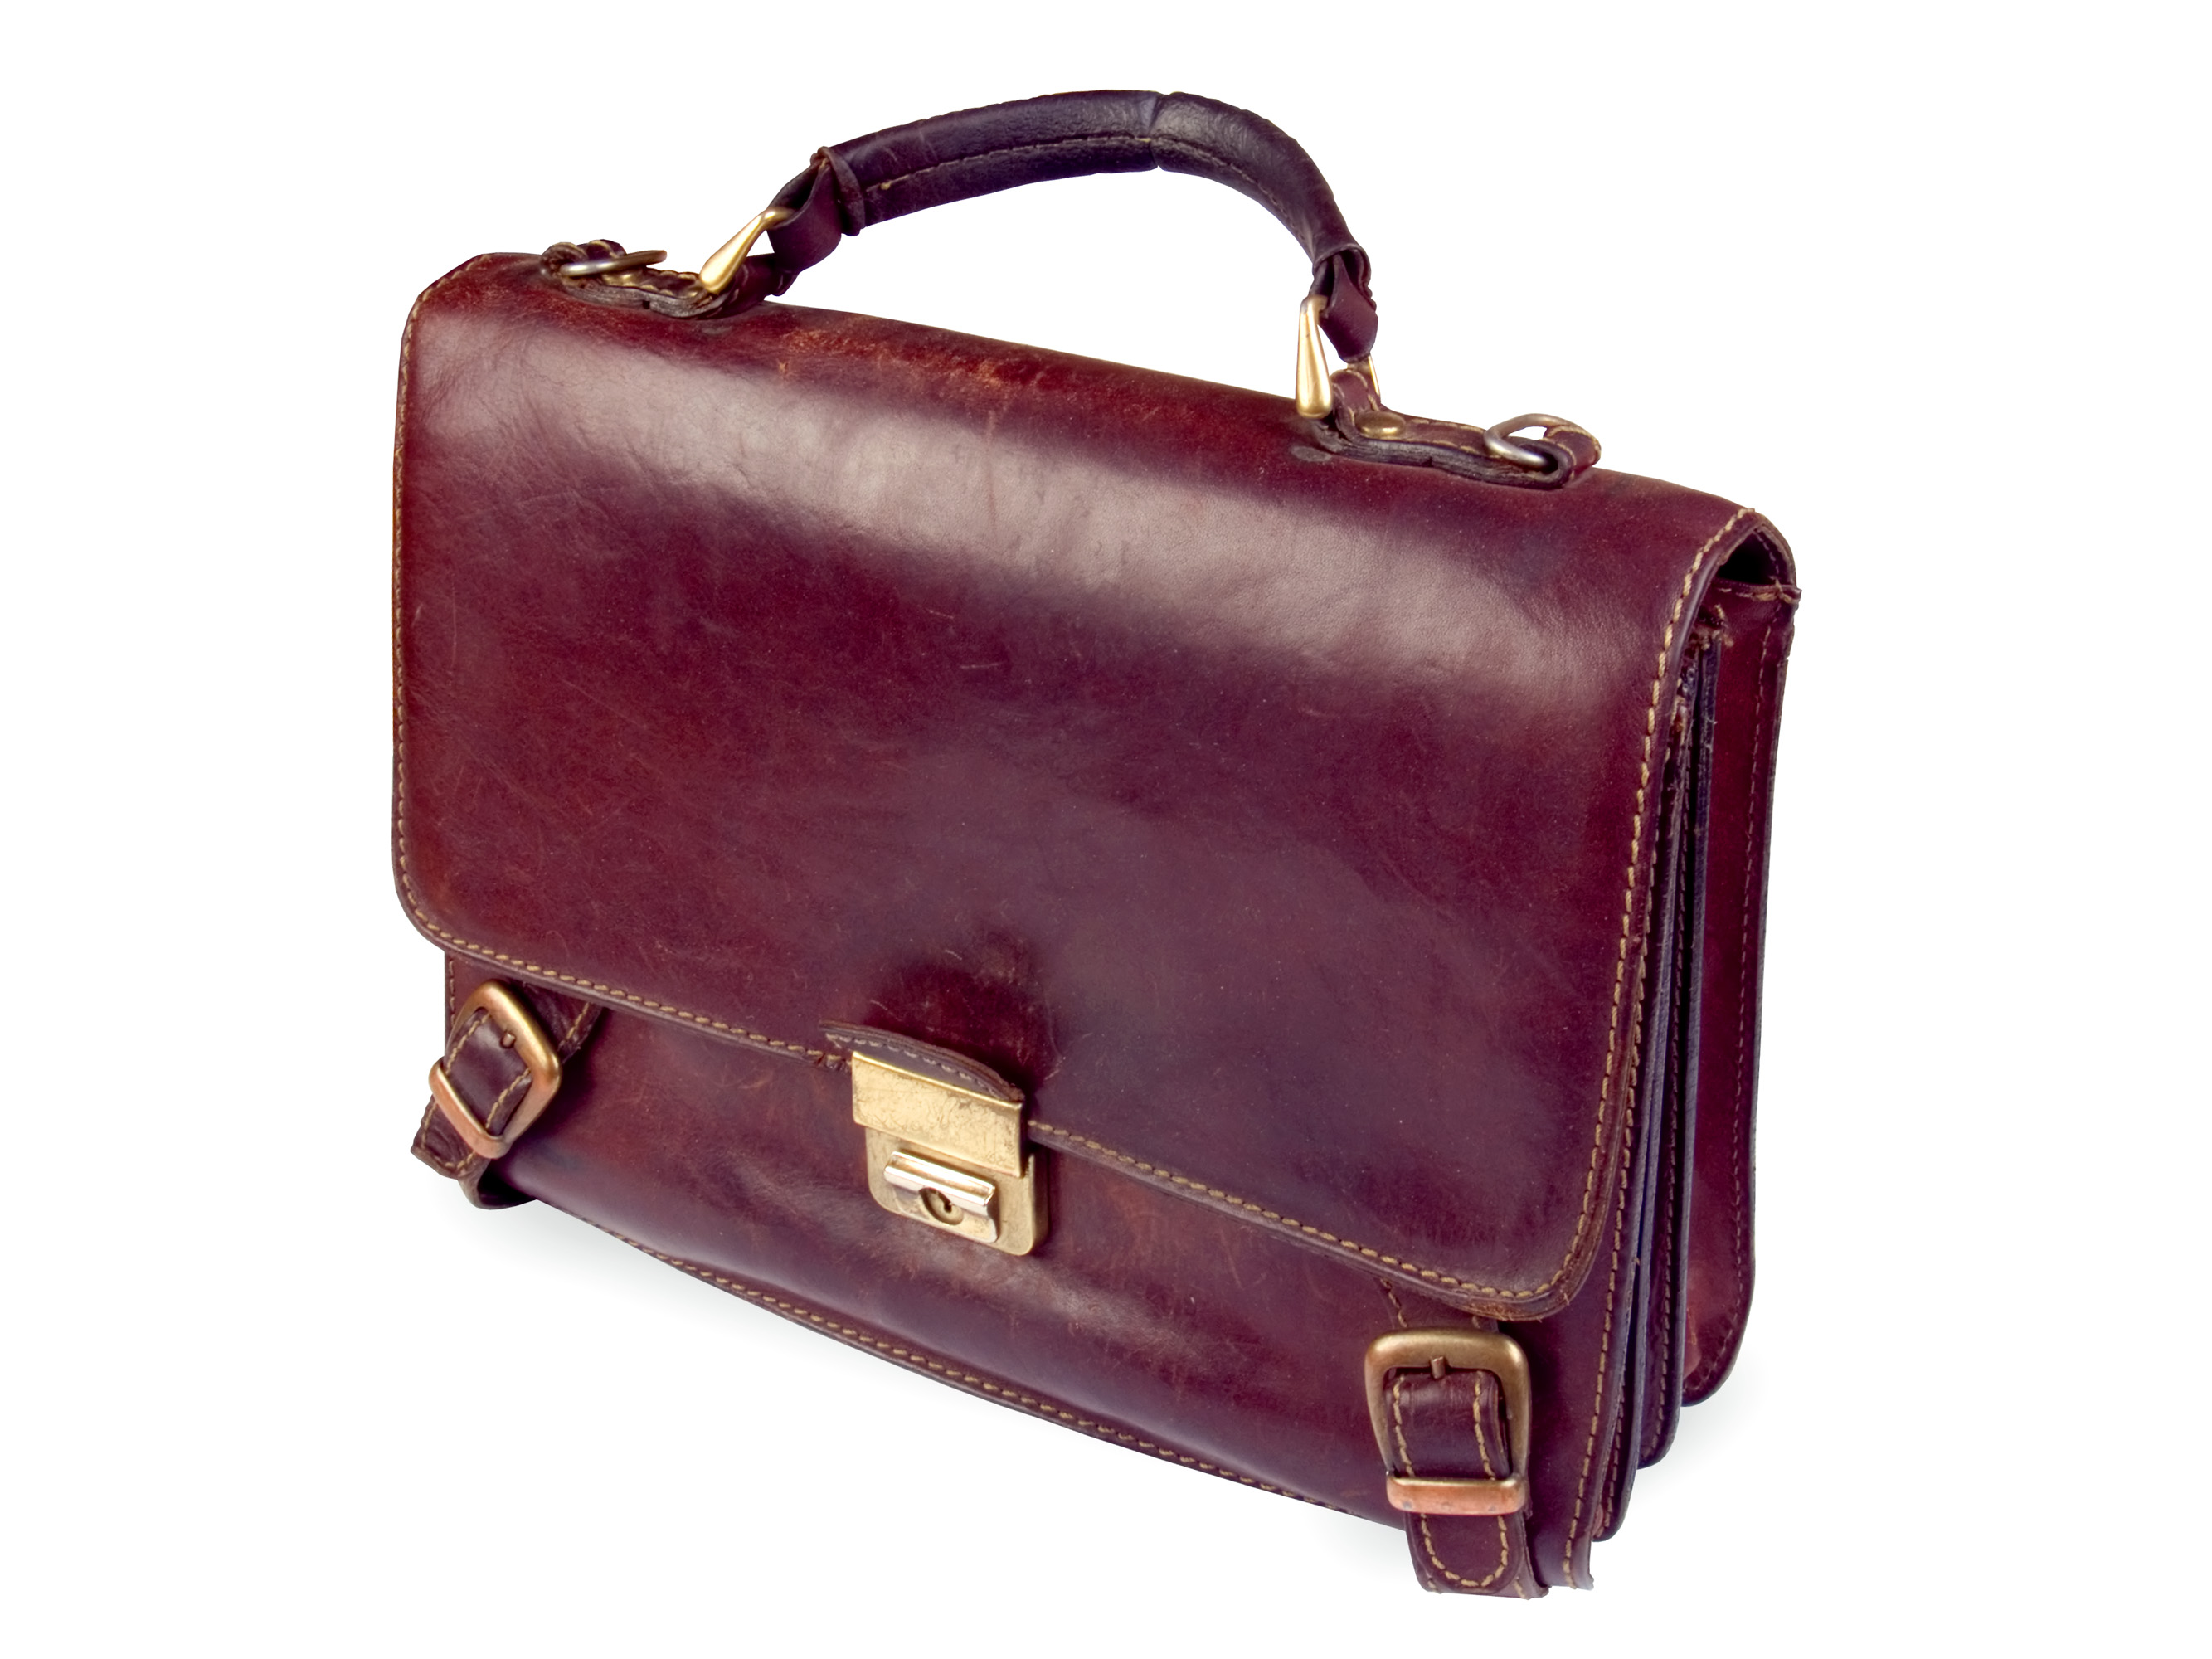 Briefcase%20-%20Leather%20Brown%20-%20Lawyer.jpg